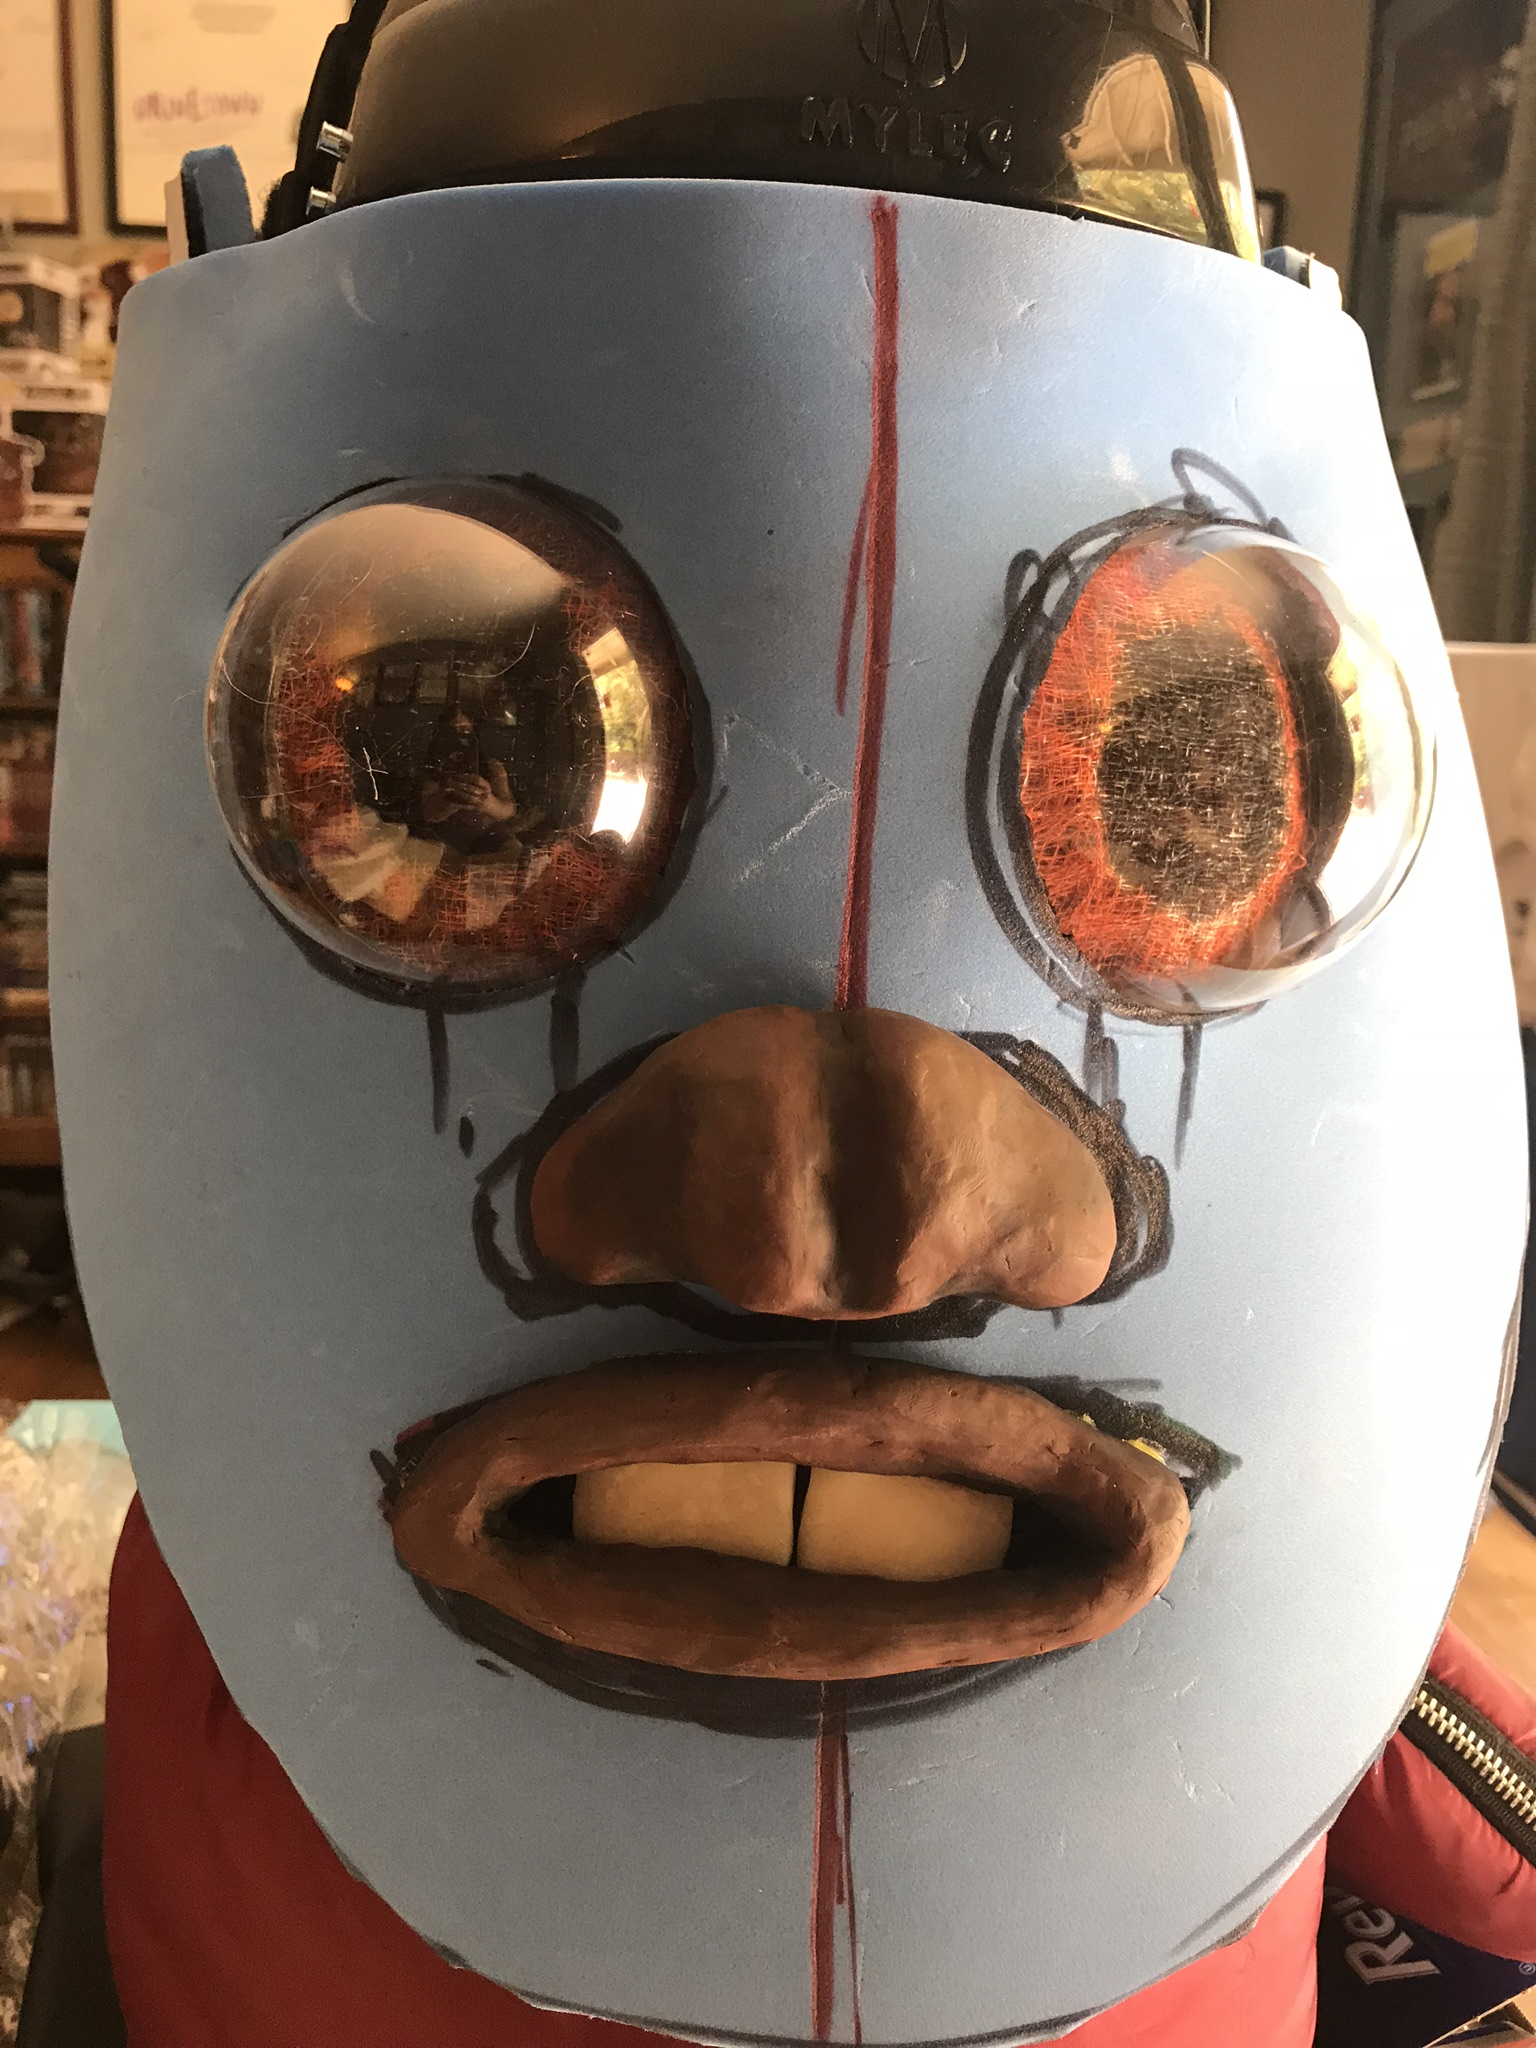 Ewok mask with nose and mouth attached